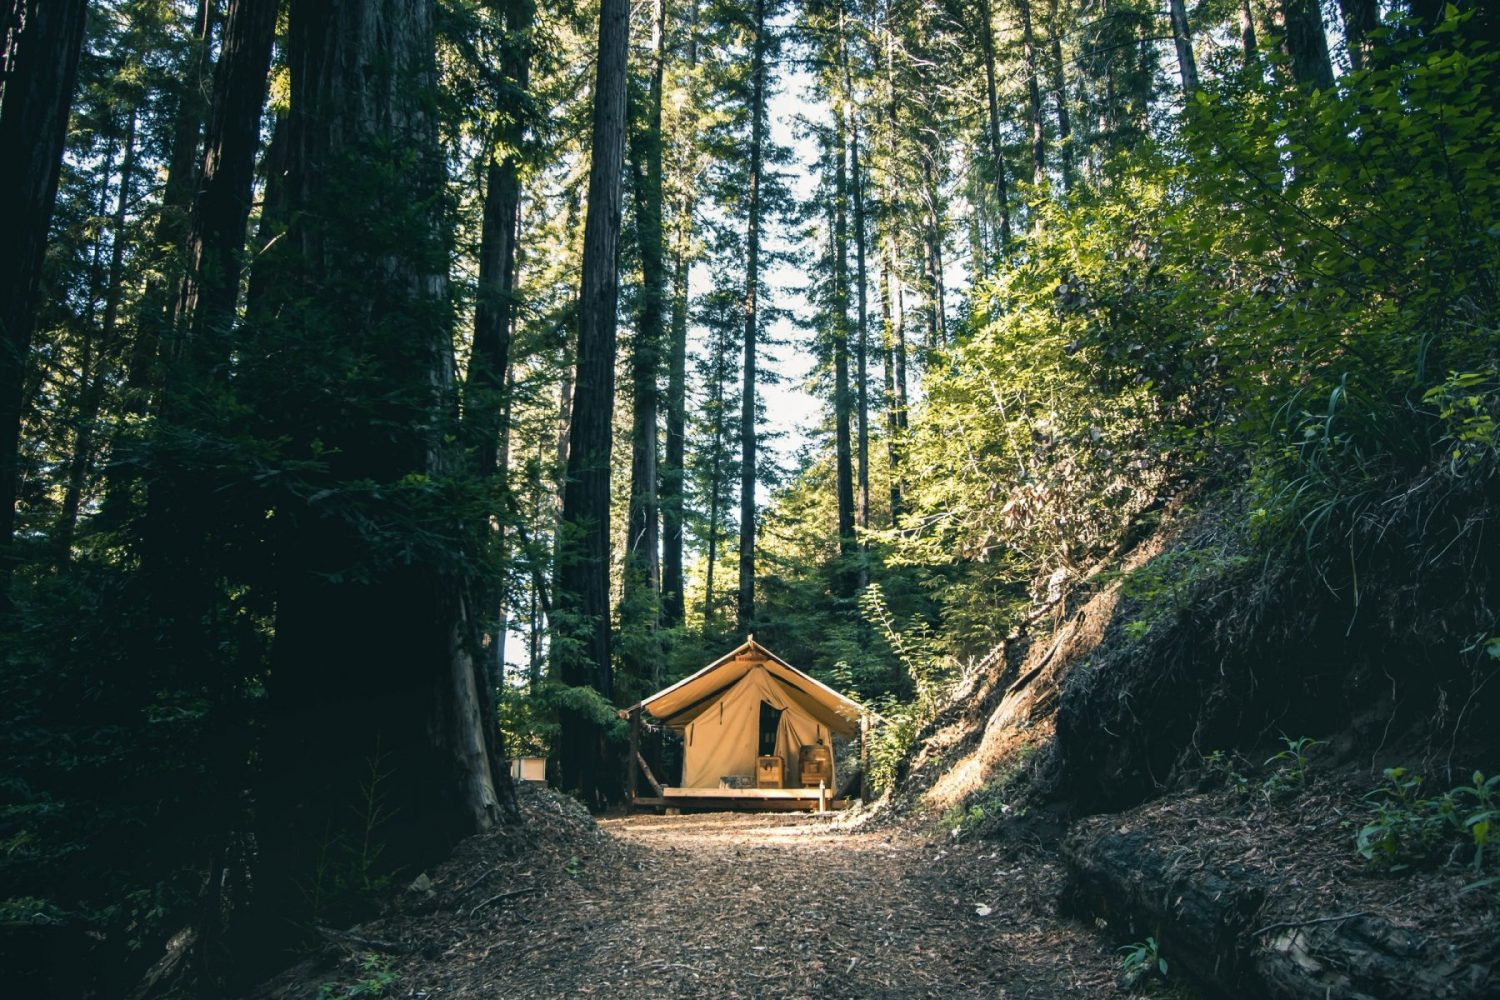 Glamping amidst trees